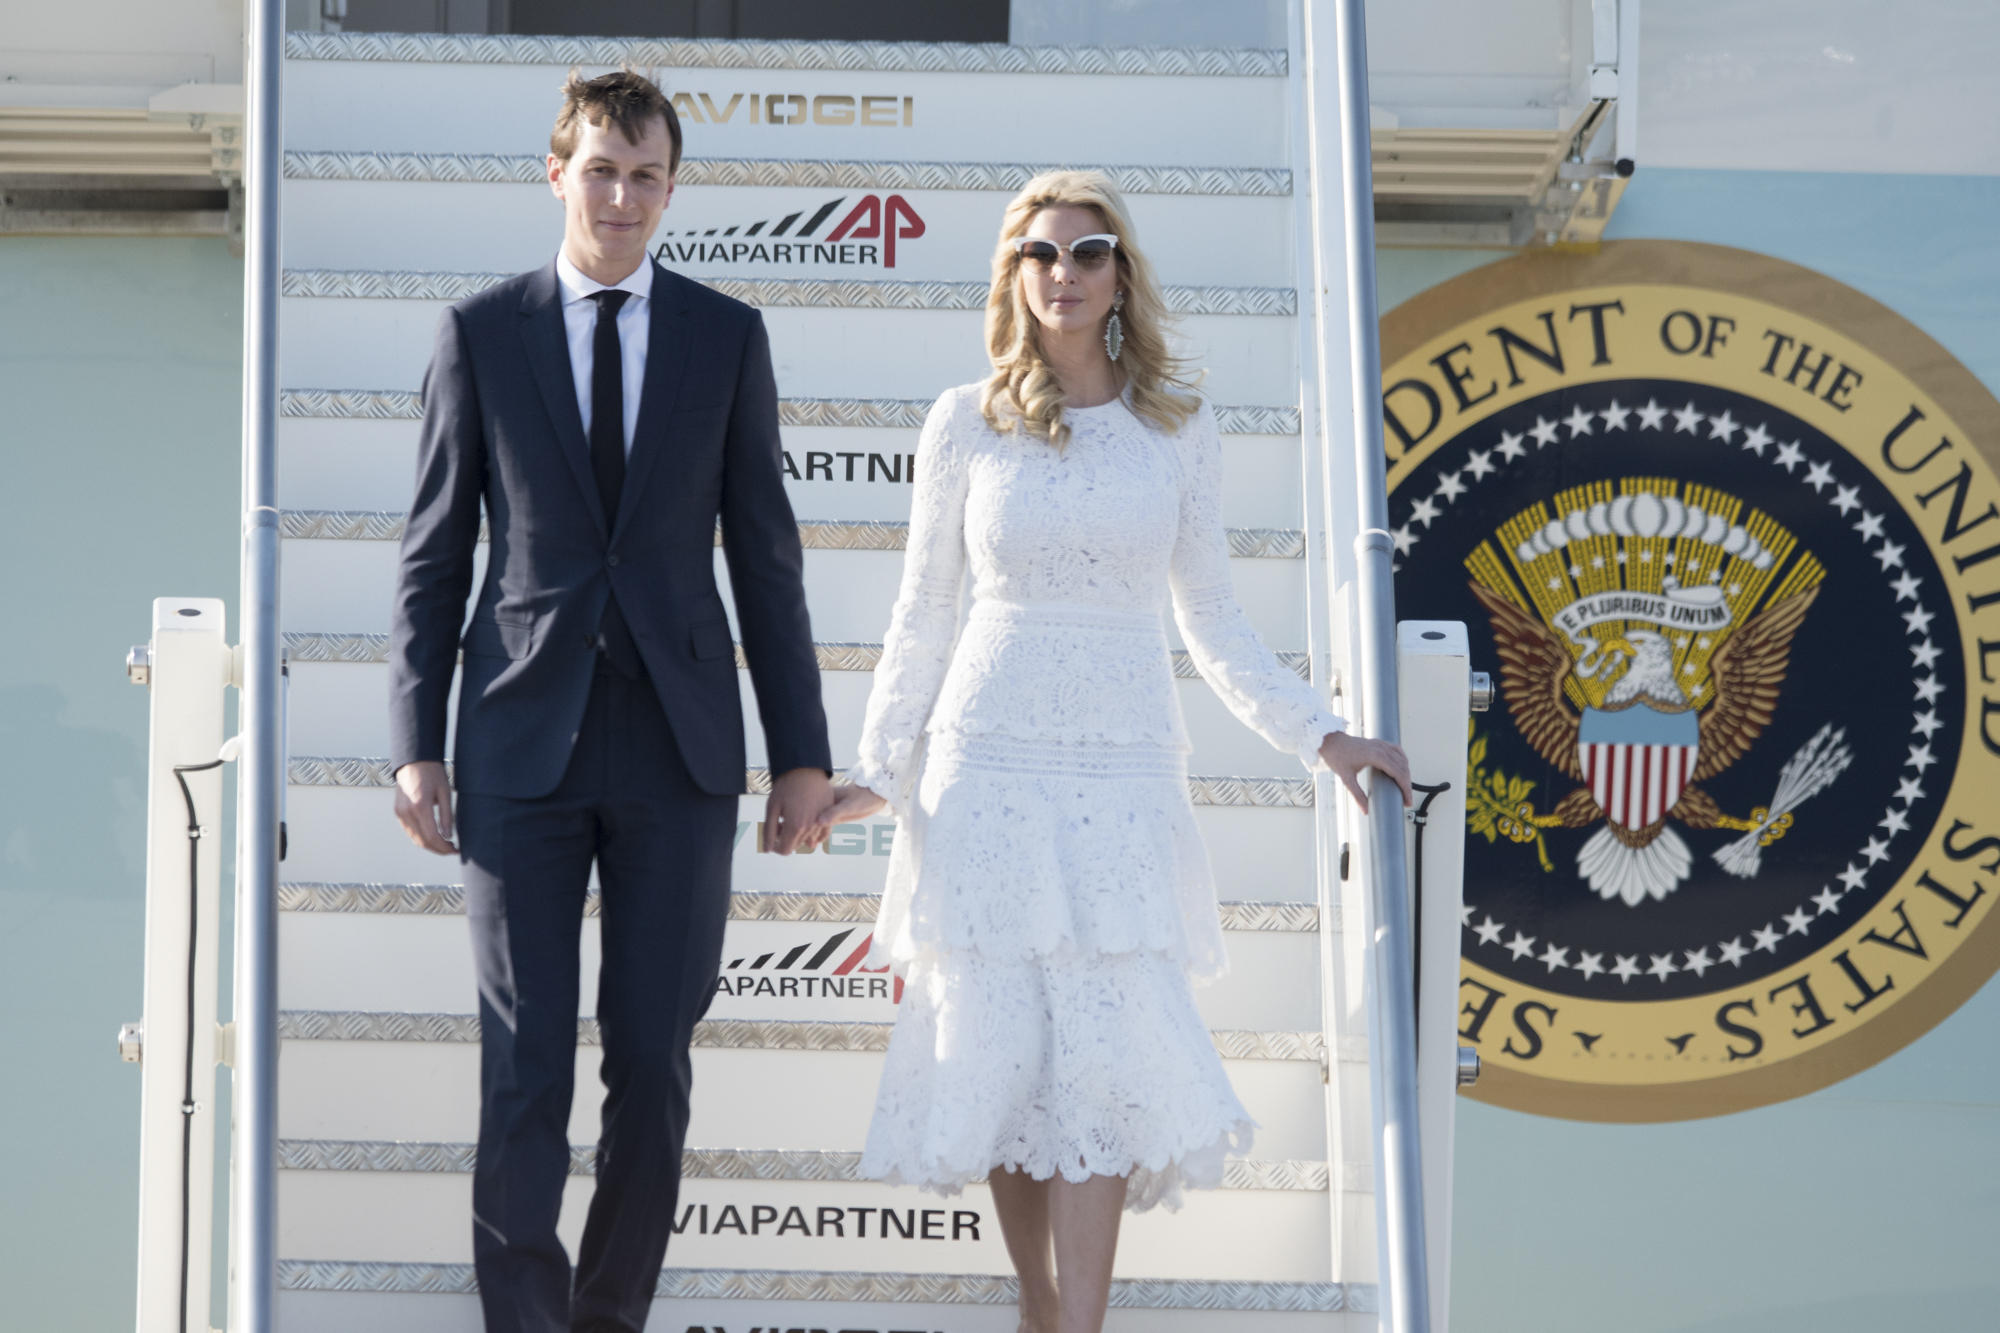 Jared Kushner and Ivanka Trump tagged along (with Melania) on President Trump's first official visit to Italy. (Image: KIKA/WENN.com)